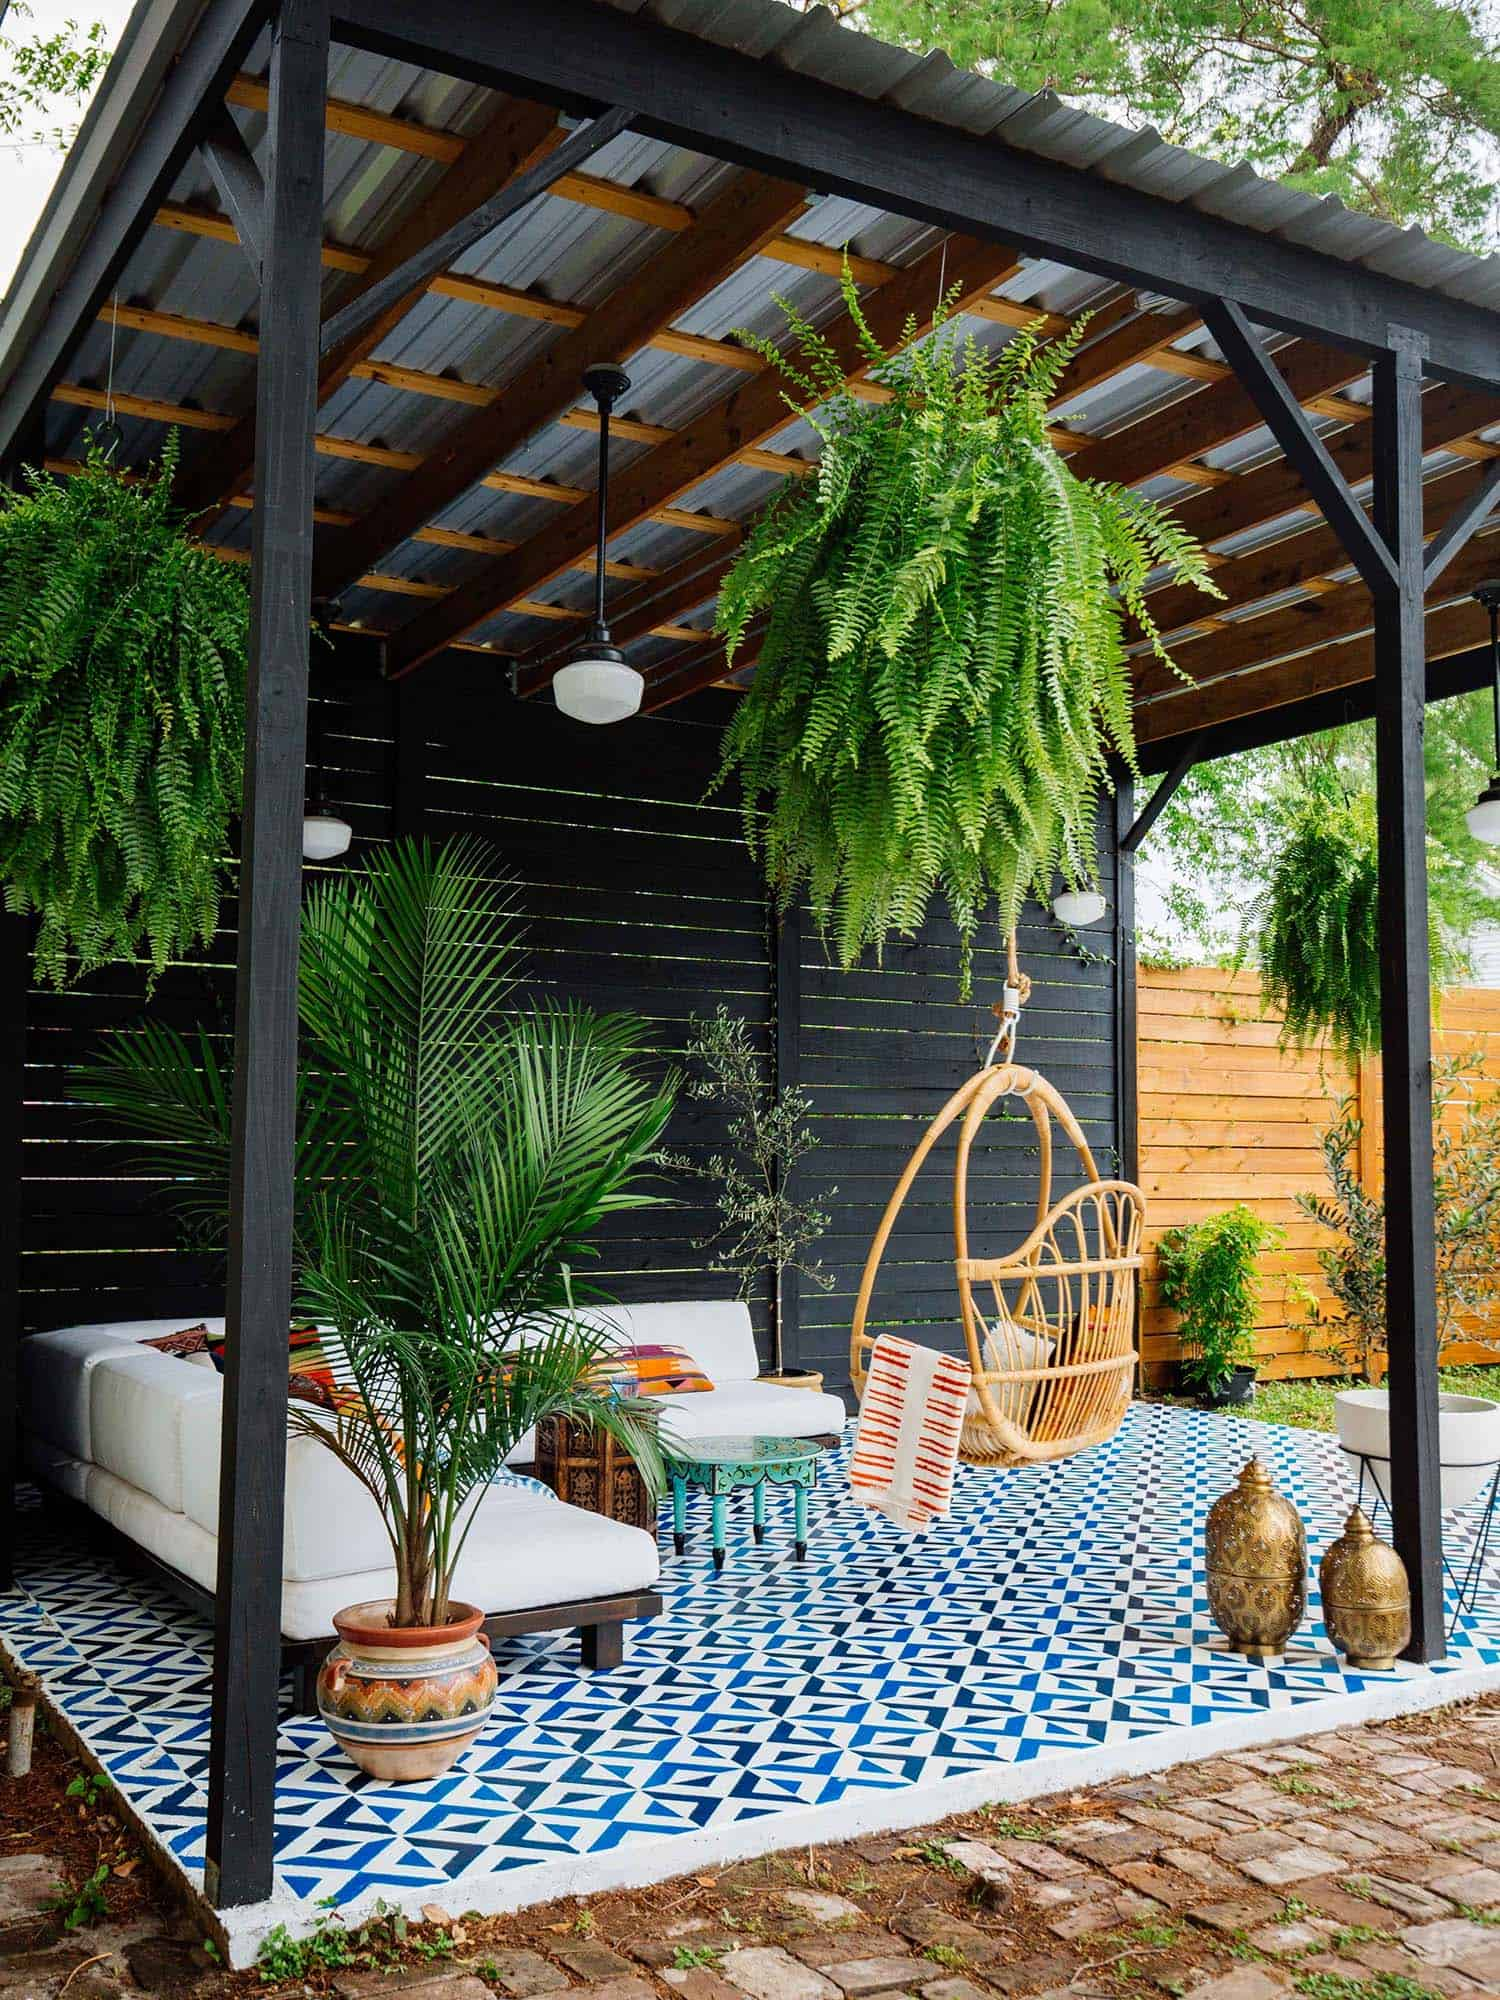 35 Brilliant and inspiring patio ideas for outdoor living ... on Back Garden Patio Ideas  id=84742